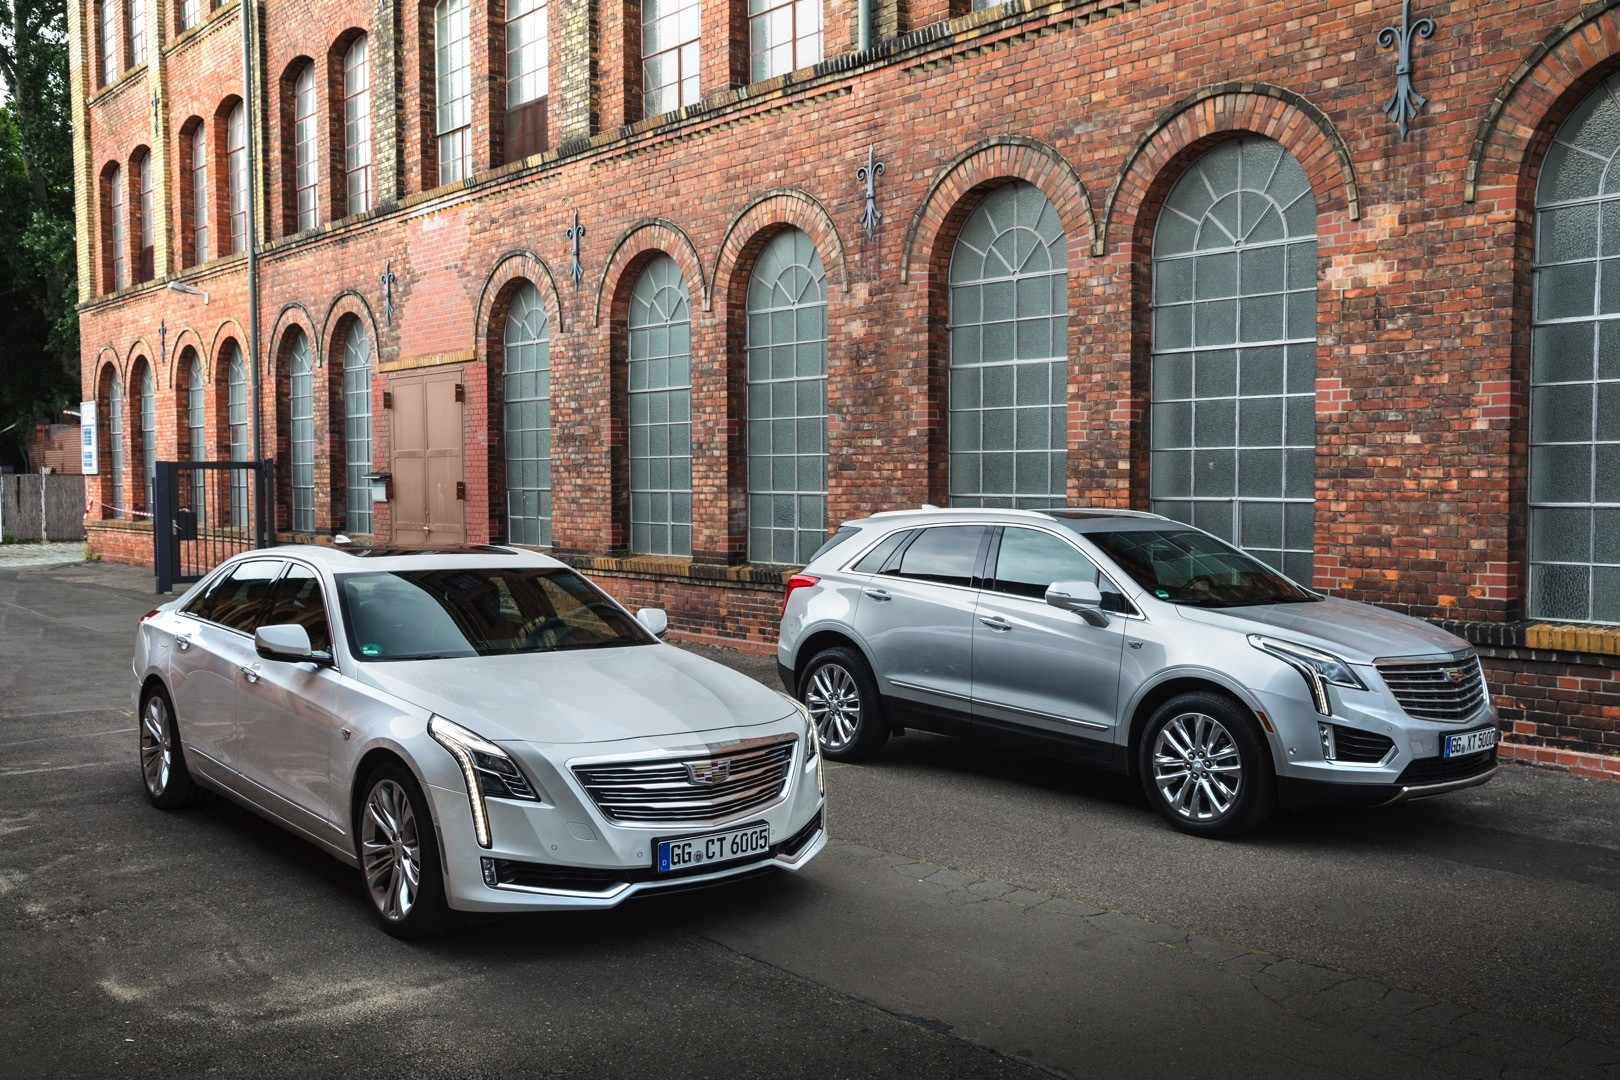 2017 Cadillac Xt5 And Ct6 European Models